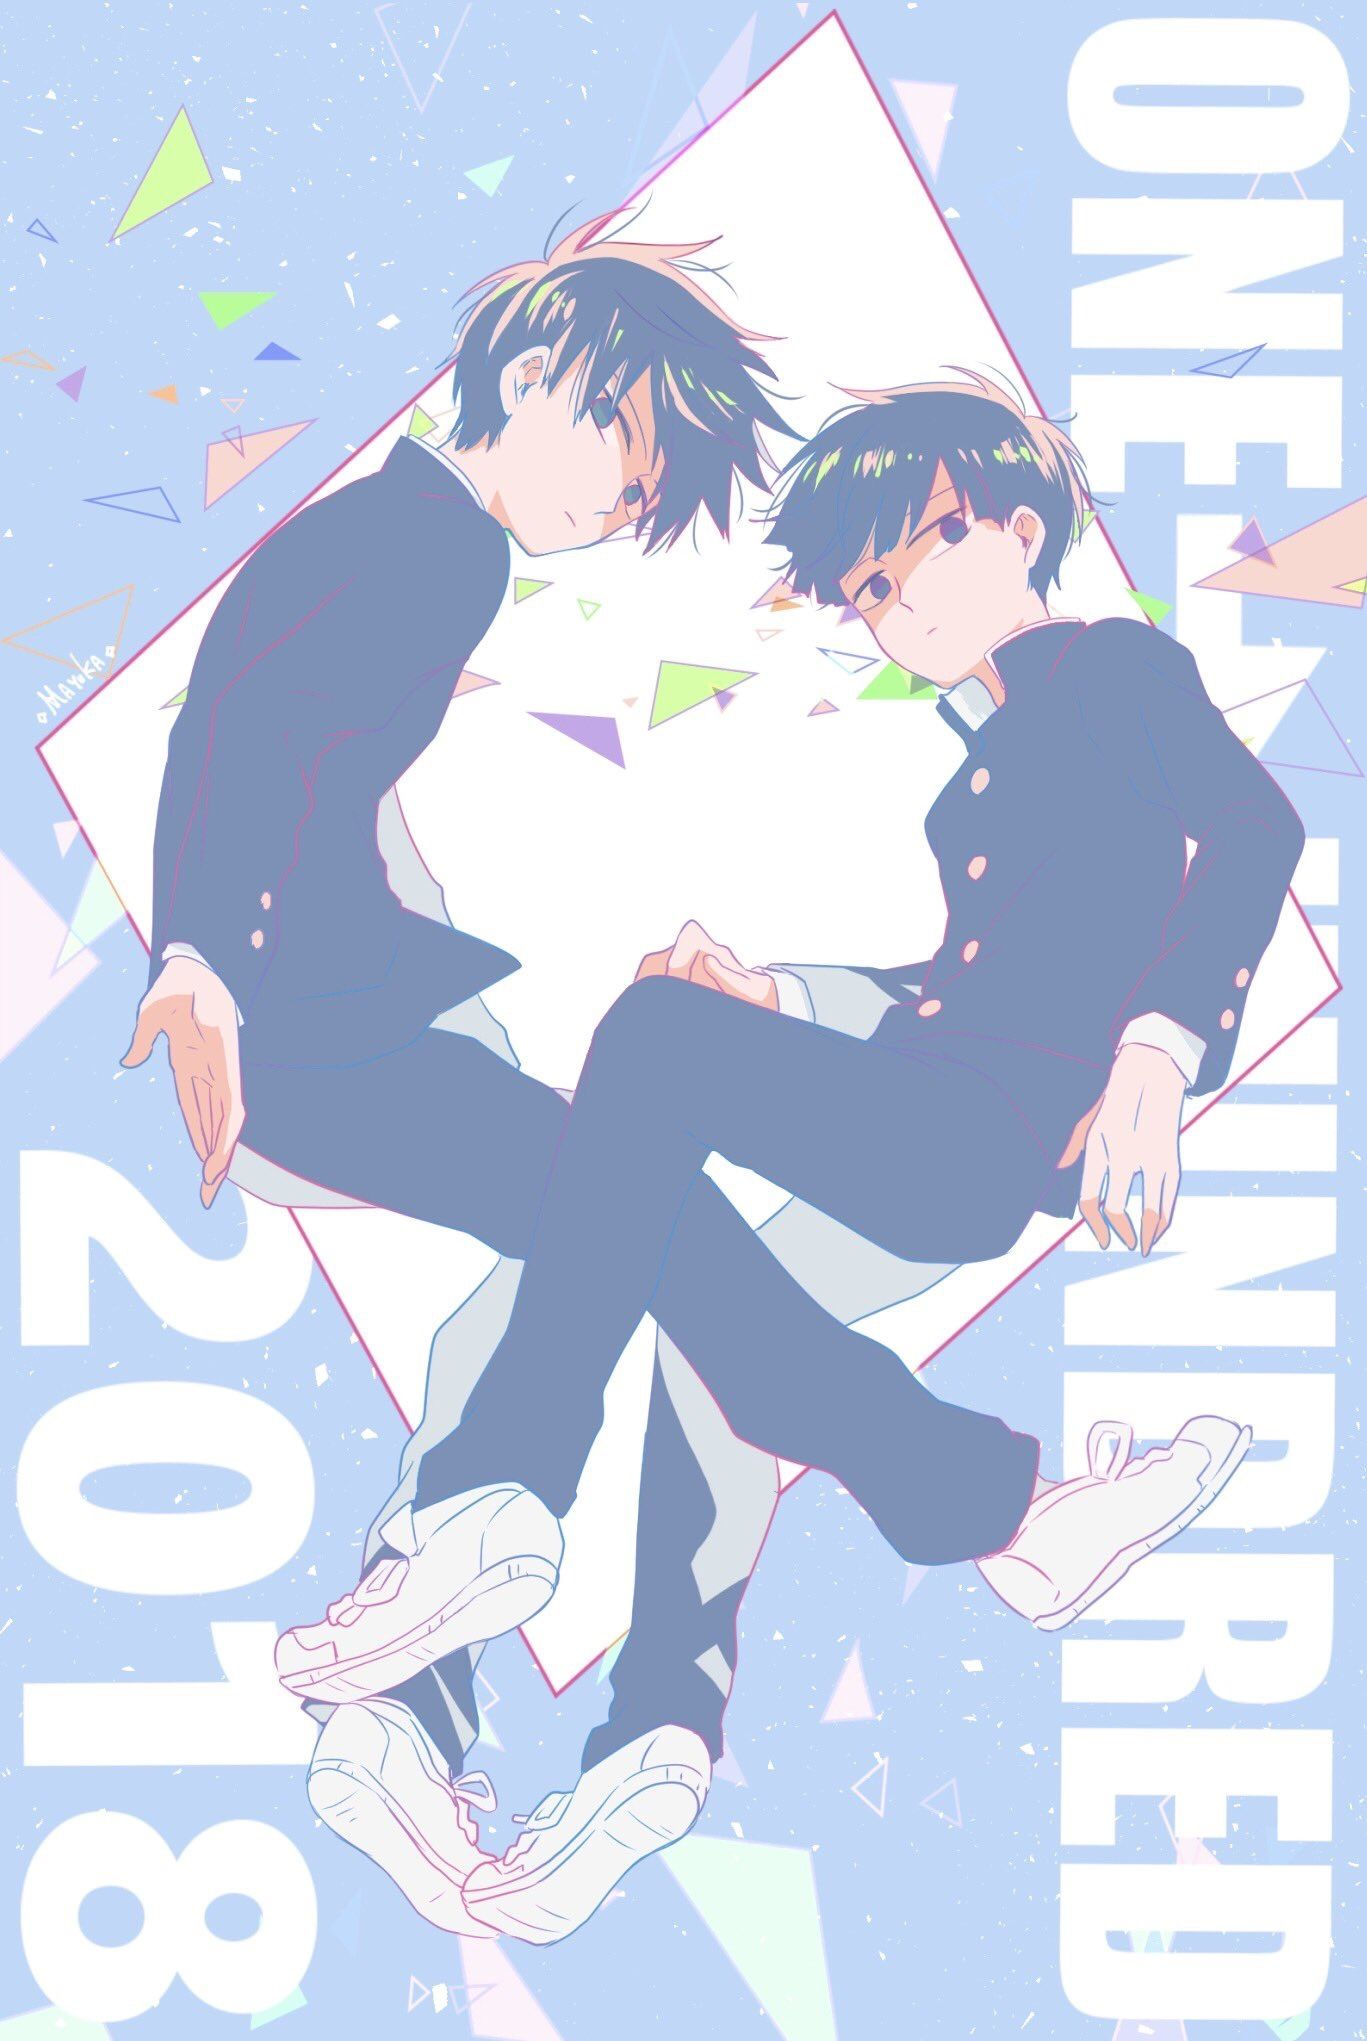 Pin by Jing Teo on Art Graphic Anime, Mob psycho 100